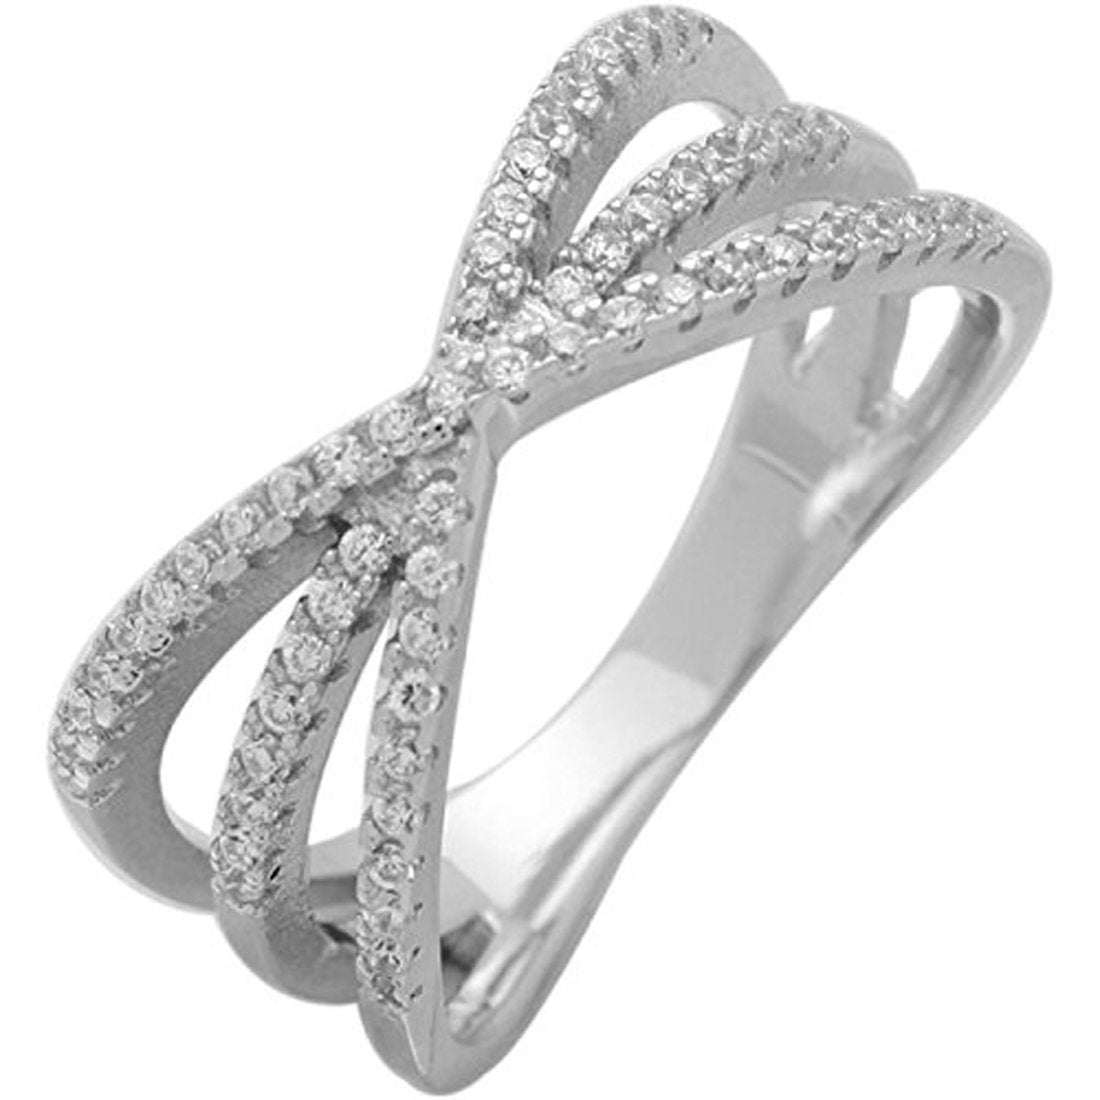 Triple X Crisscross Micro Pave Simulated CZ Accent Ring 925 Sterling Silver